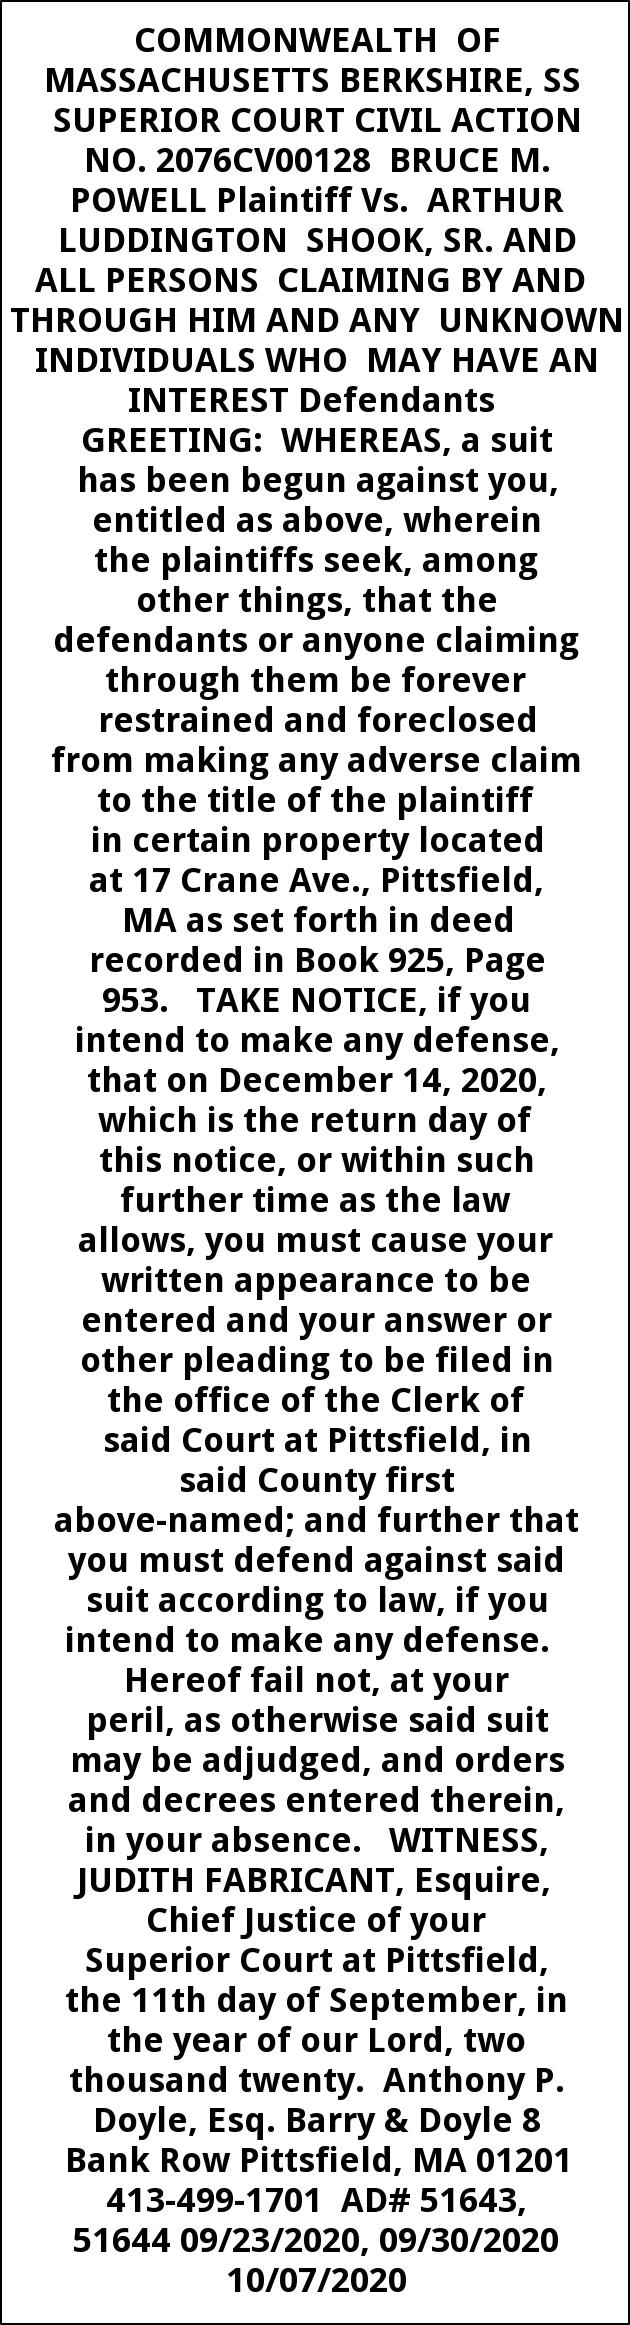 Superior Court Civil Action